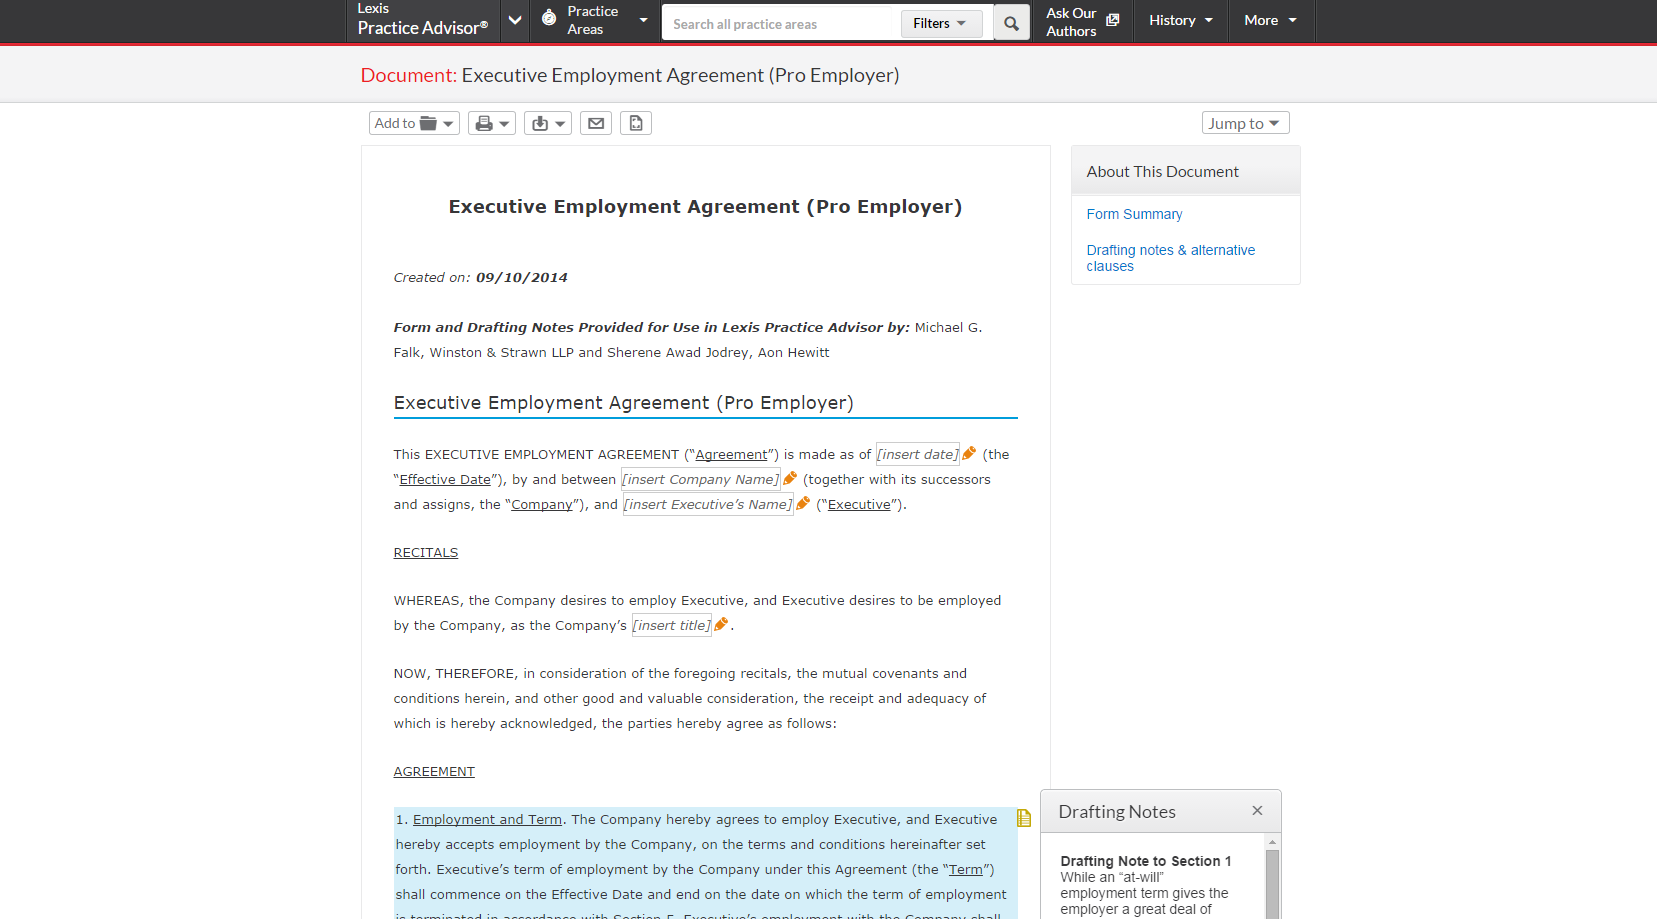 FormExecutive Employment Agreement With Drafting Notes And Alternate  Clauses Content Litigation